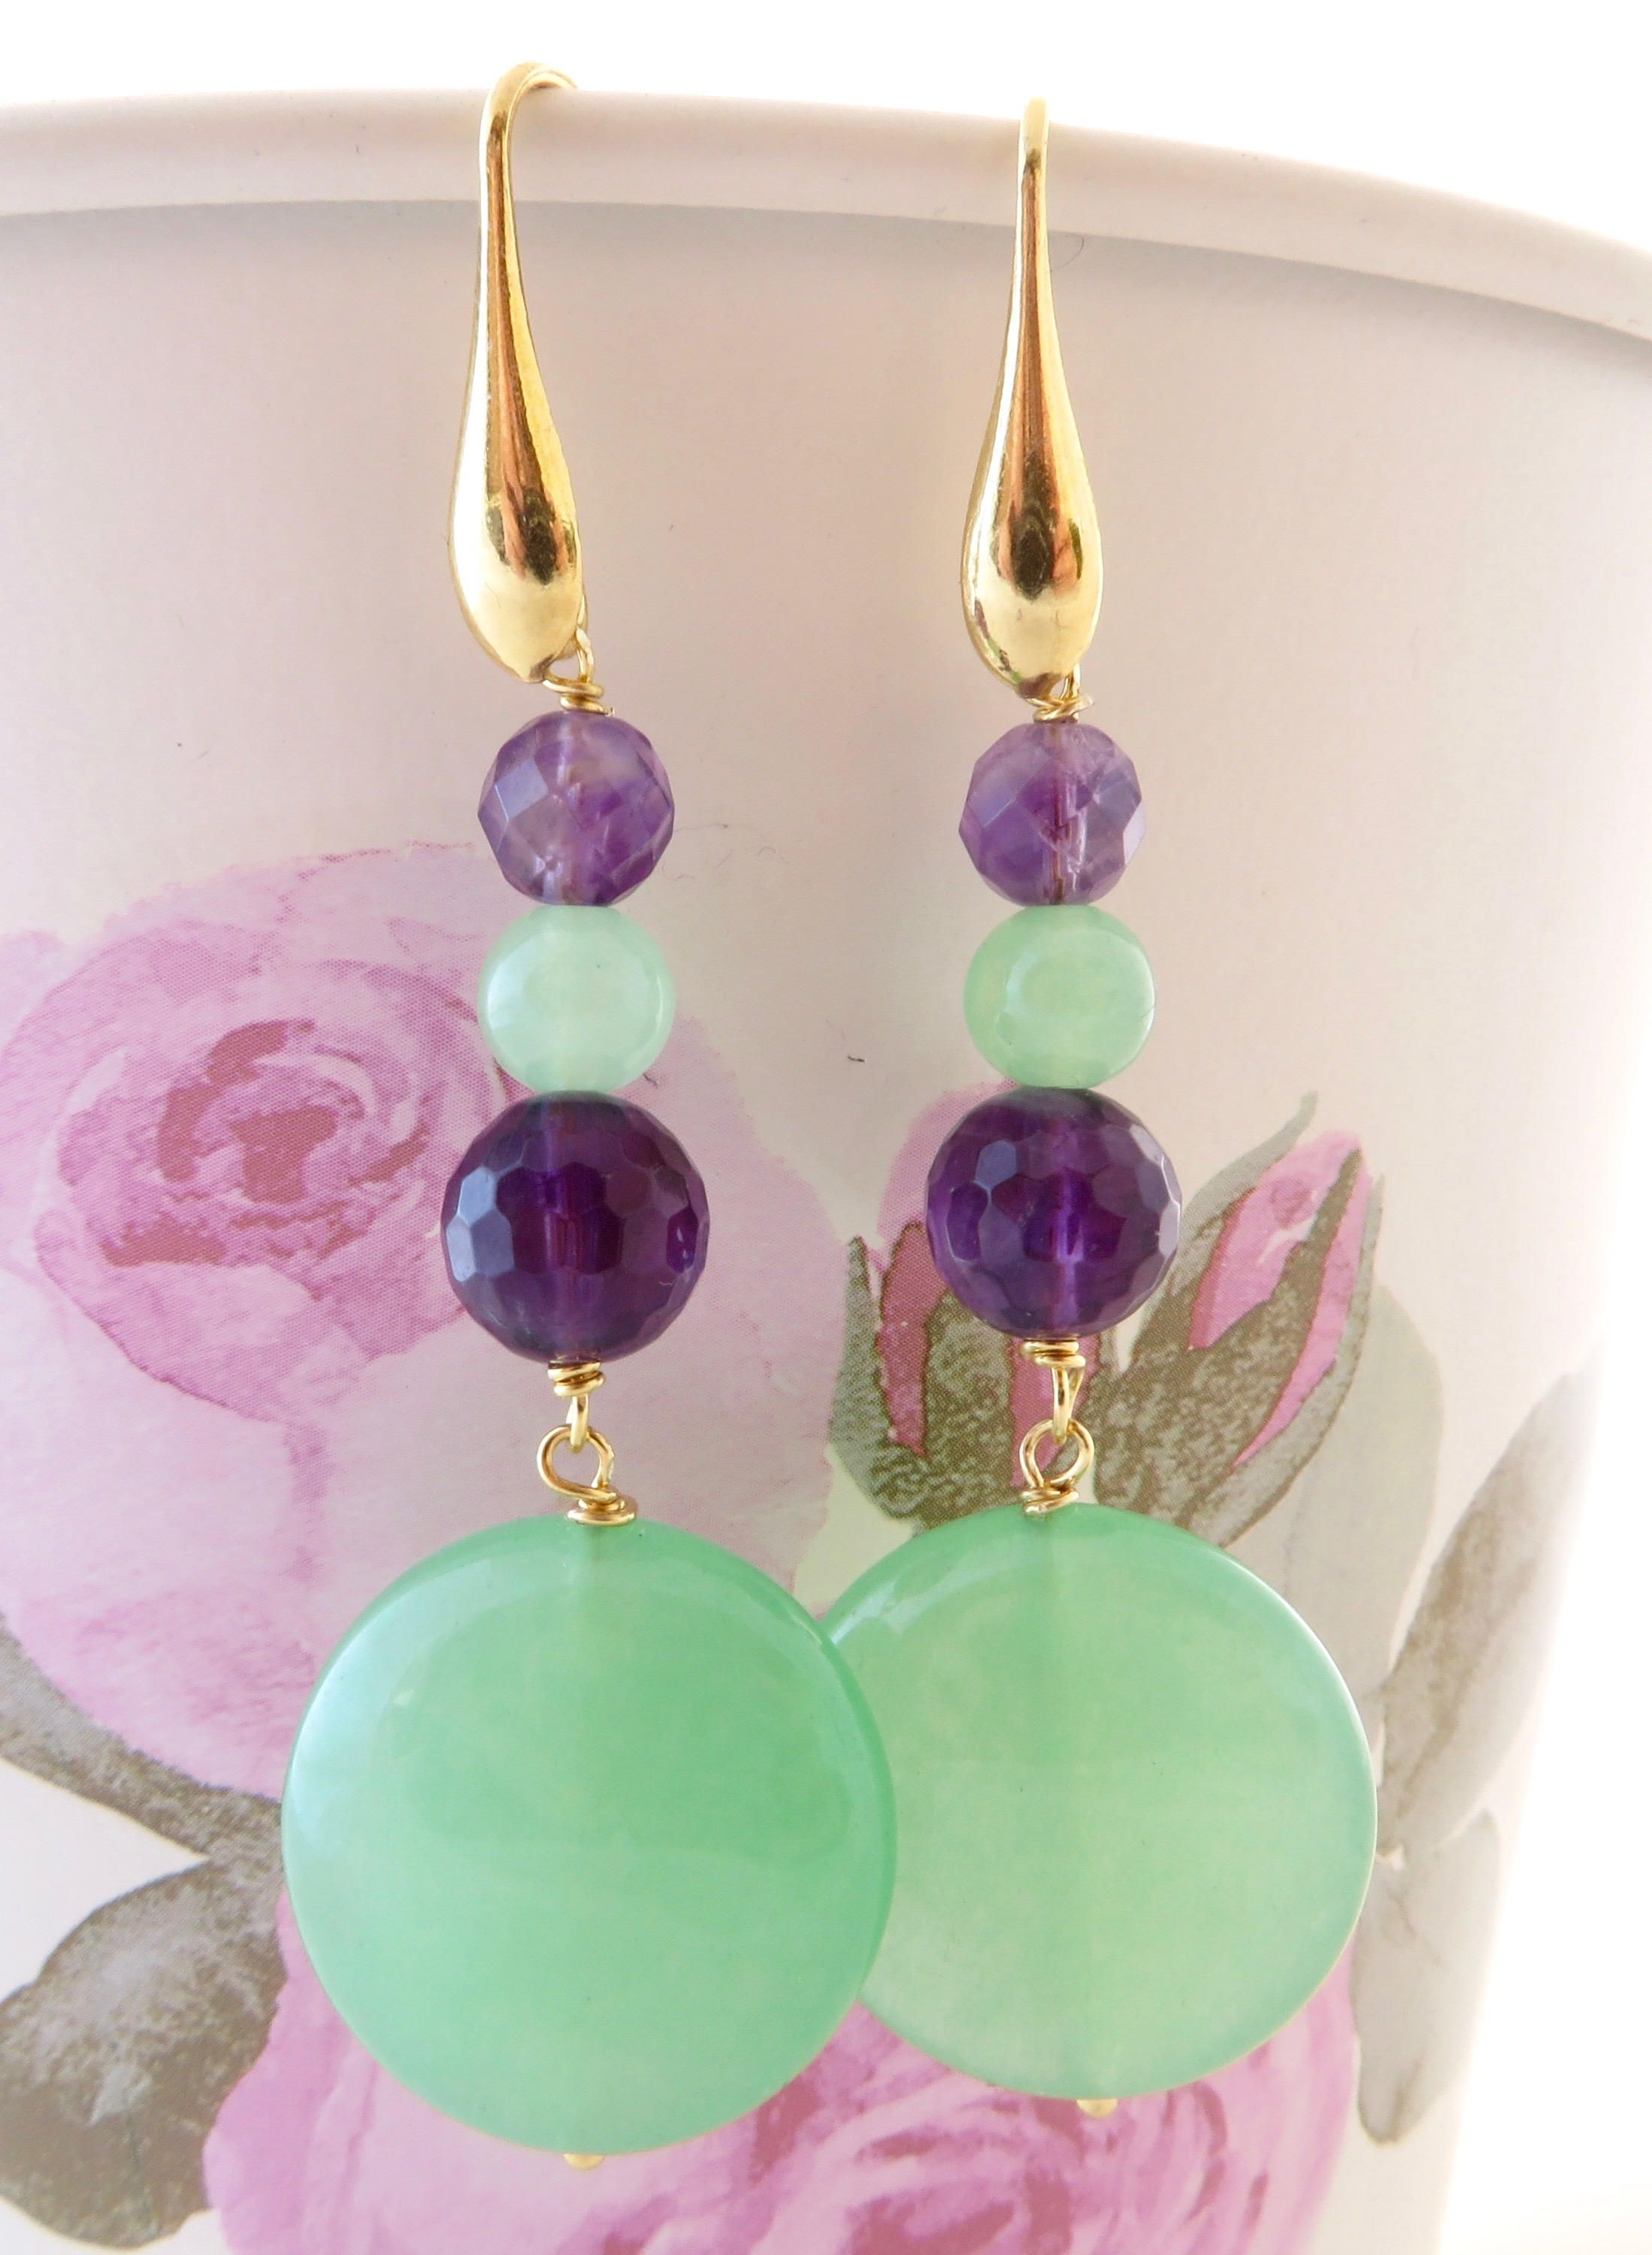 Photo of Green jade earrings, purple amethyst earrings, dangle earrings, golden sterling silver 925 earrings,  stone jewelry, italian jewellery, gift